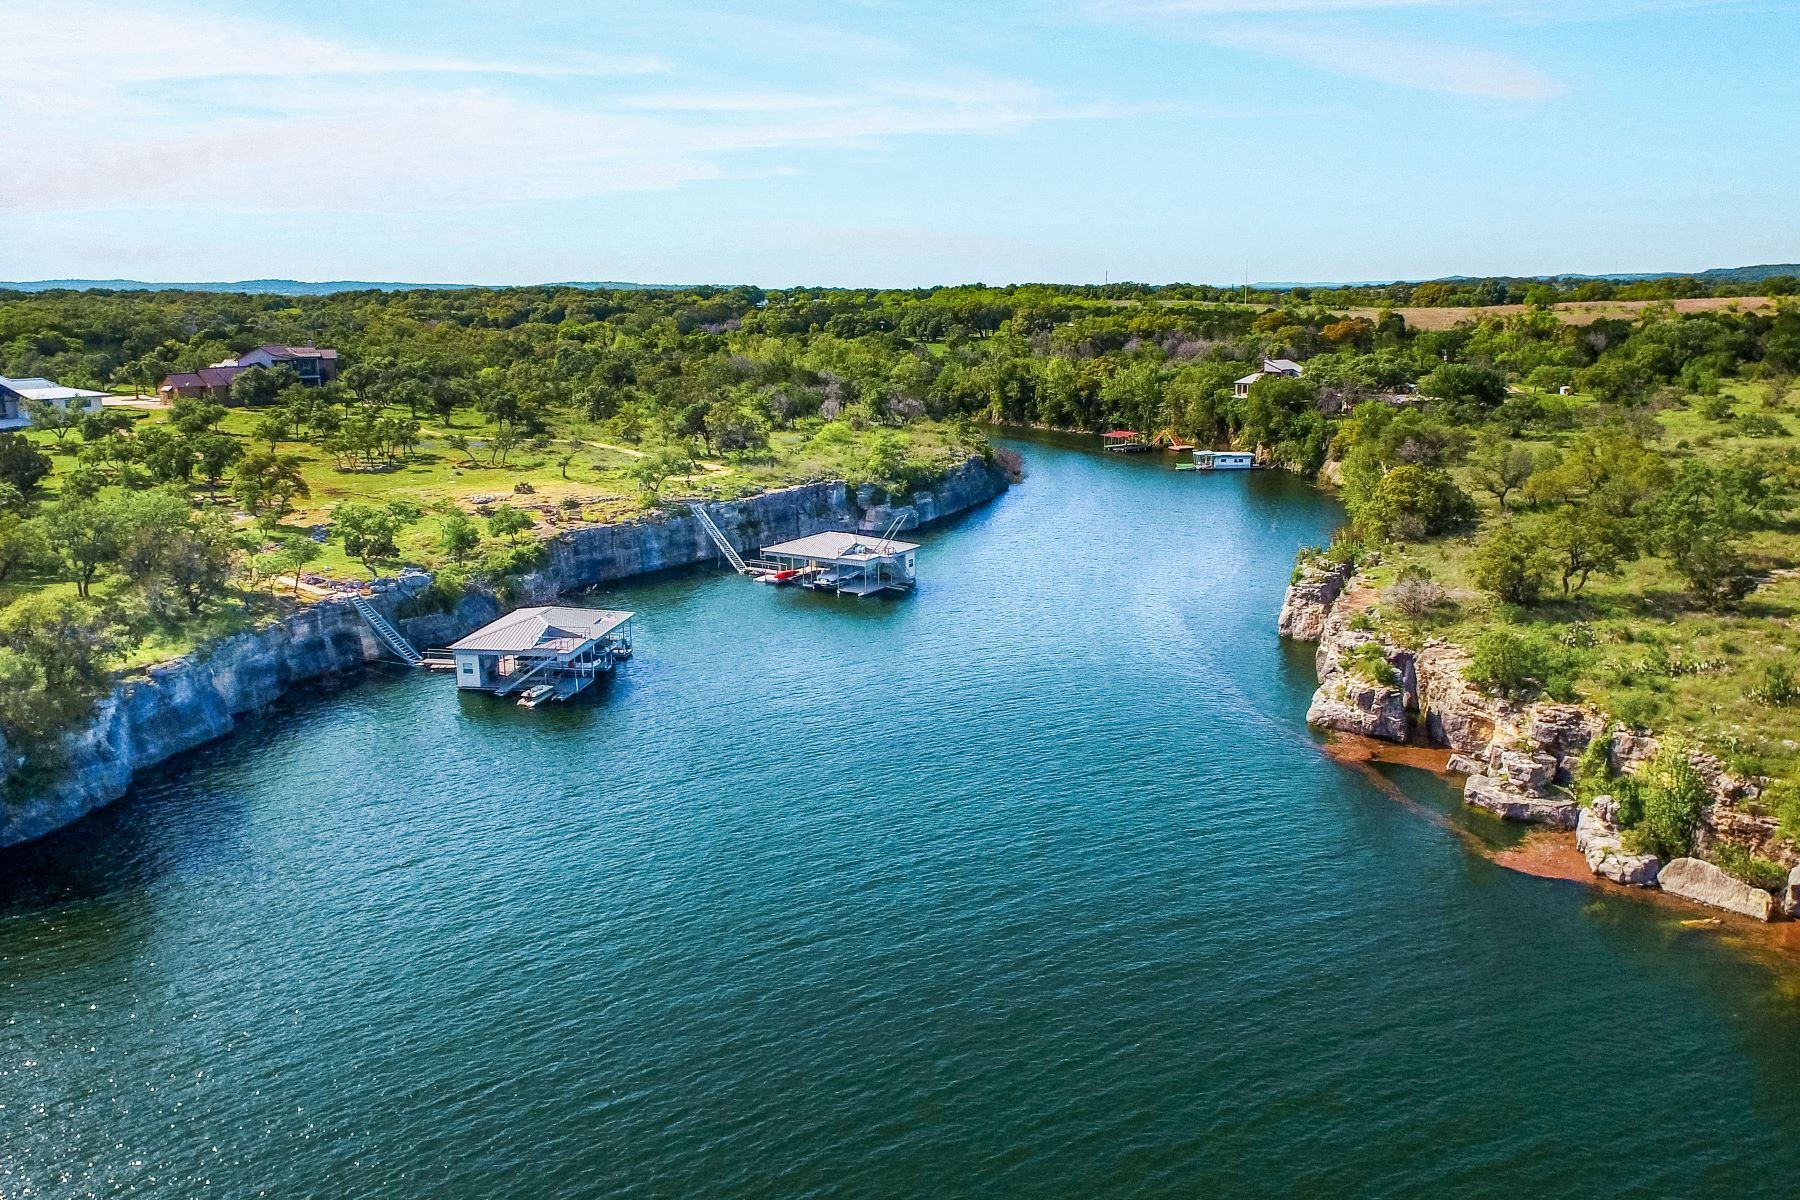 Land for Sale at Beautiful Lot in a Tranquil Community 22804 Mary Nell Lane, Spicewood, Texas, 78669 United States